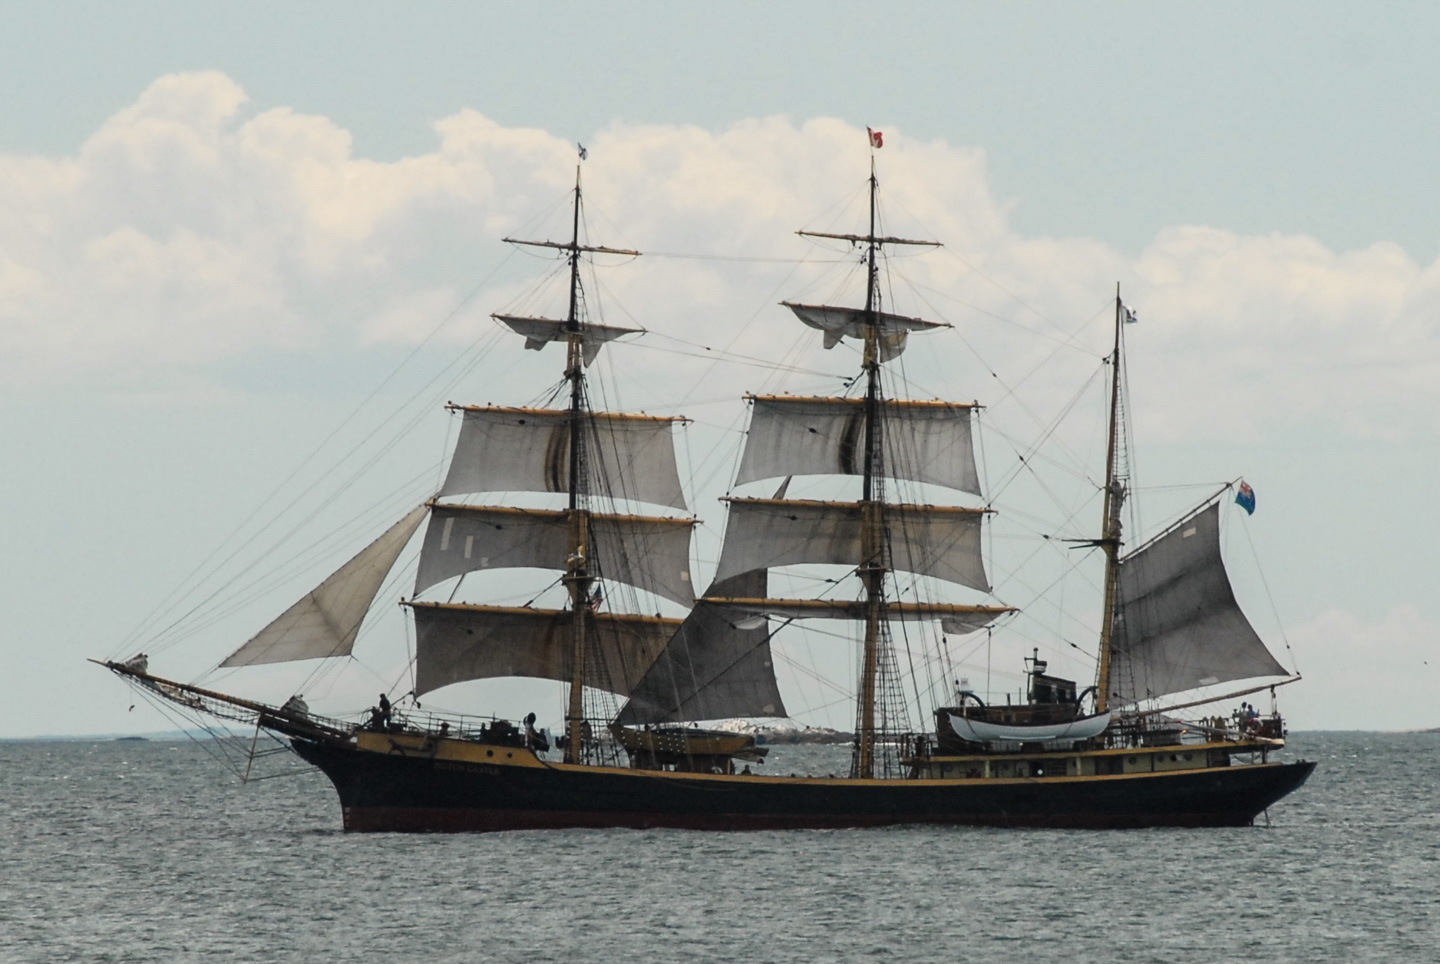 Tall ship with full sails